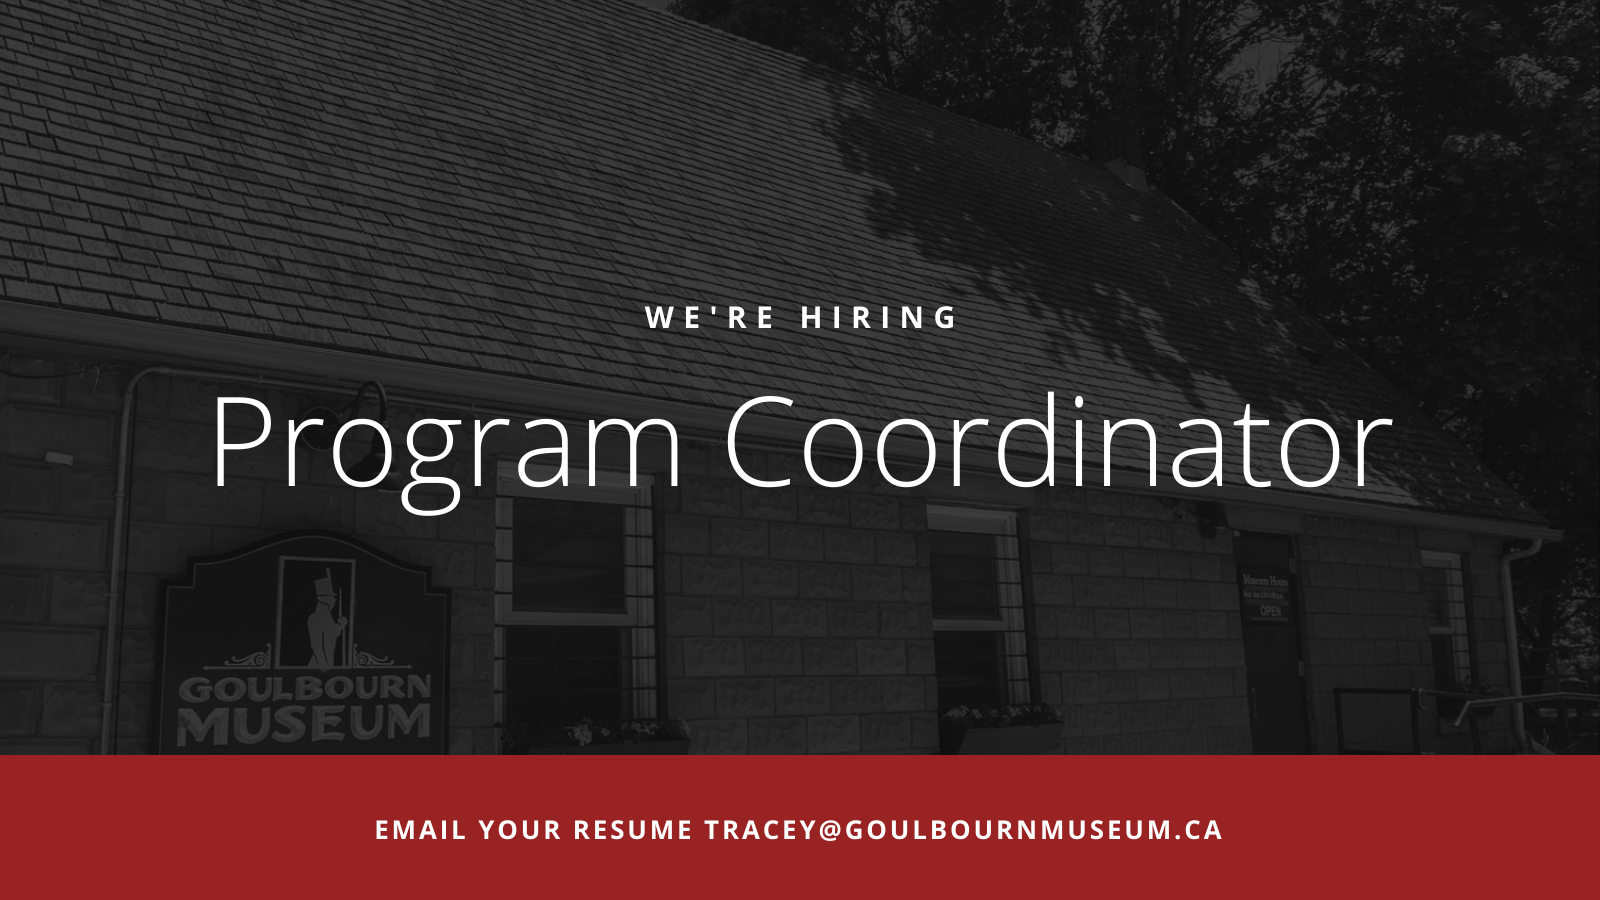 We're Hiring a Program Coordinator